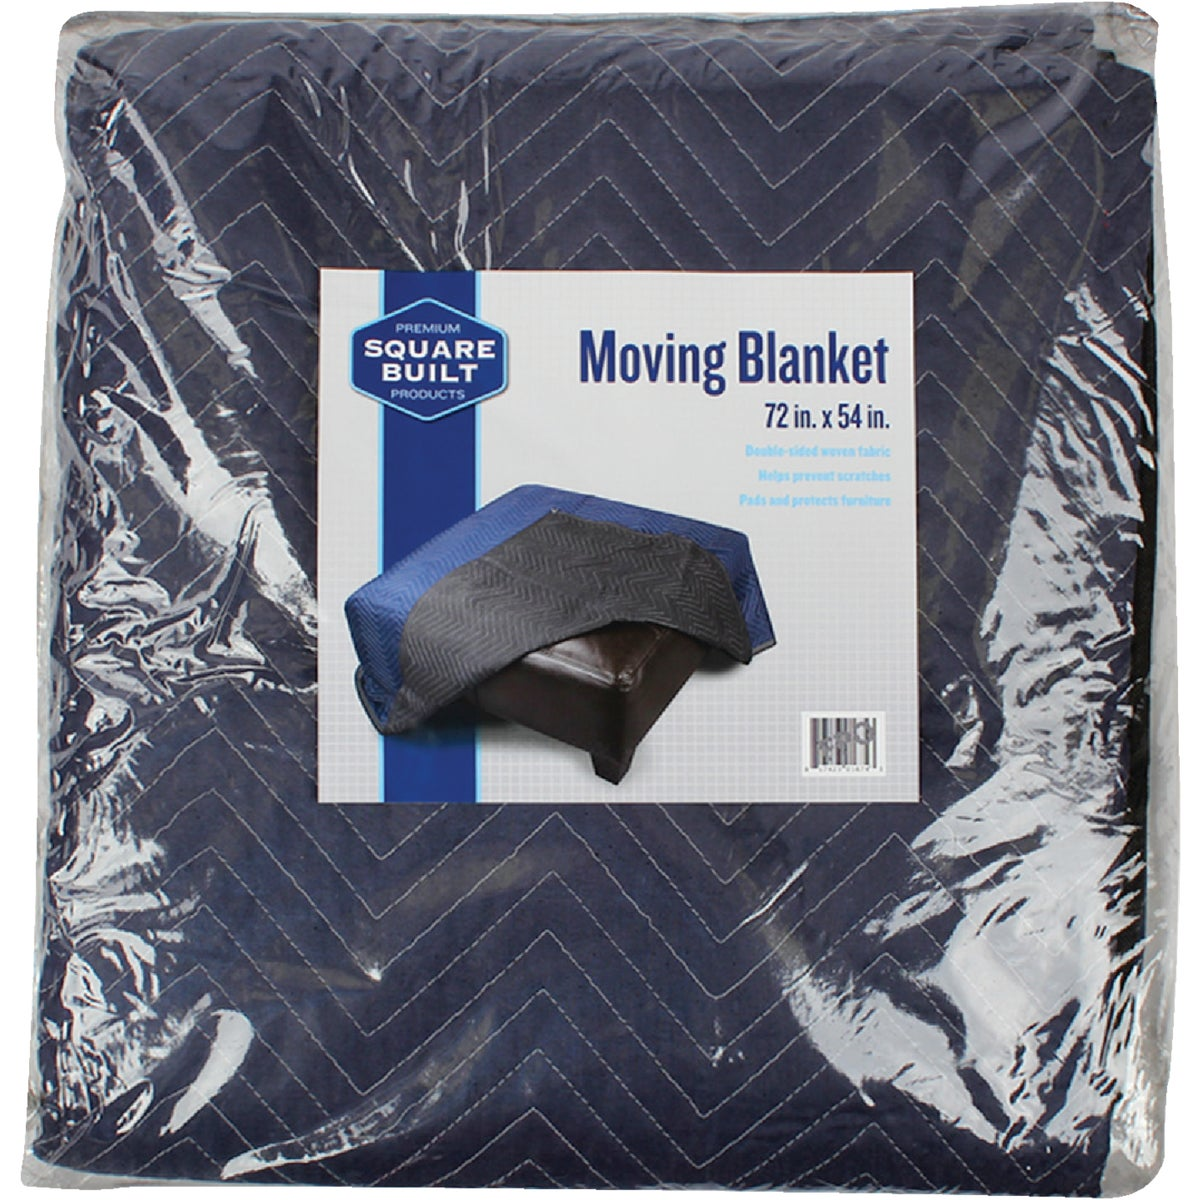 MOVING BLANKET - MB8072 by Broadway Industries